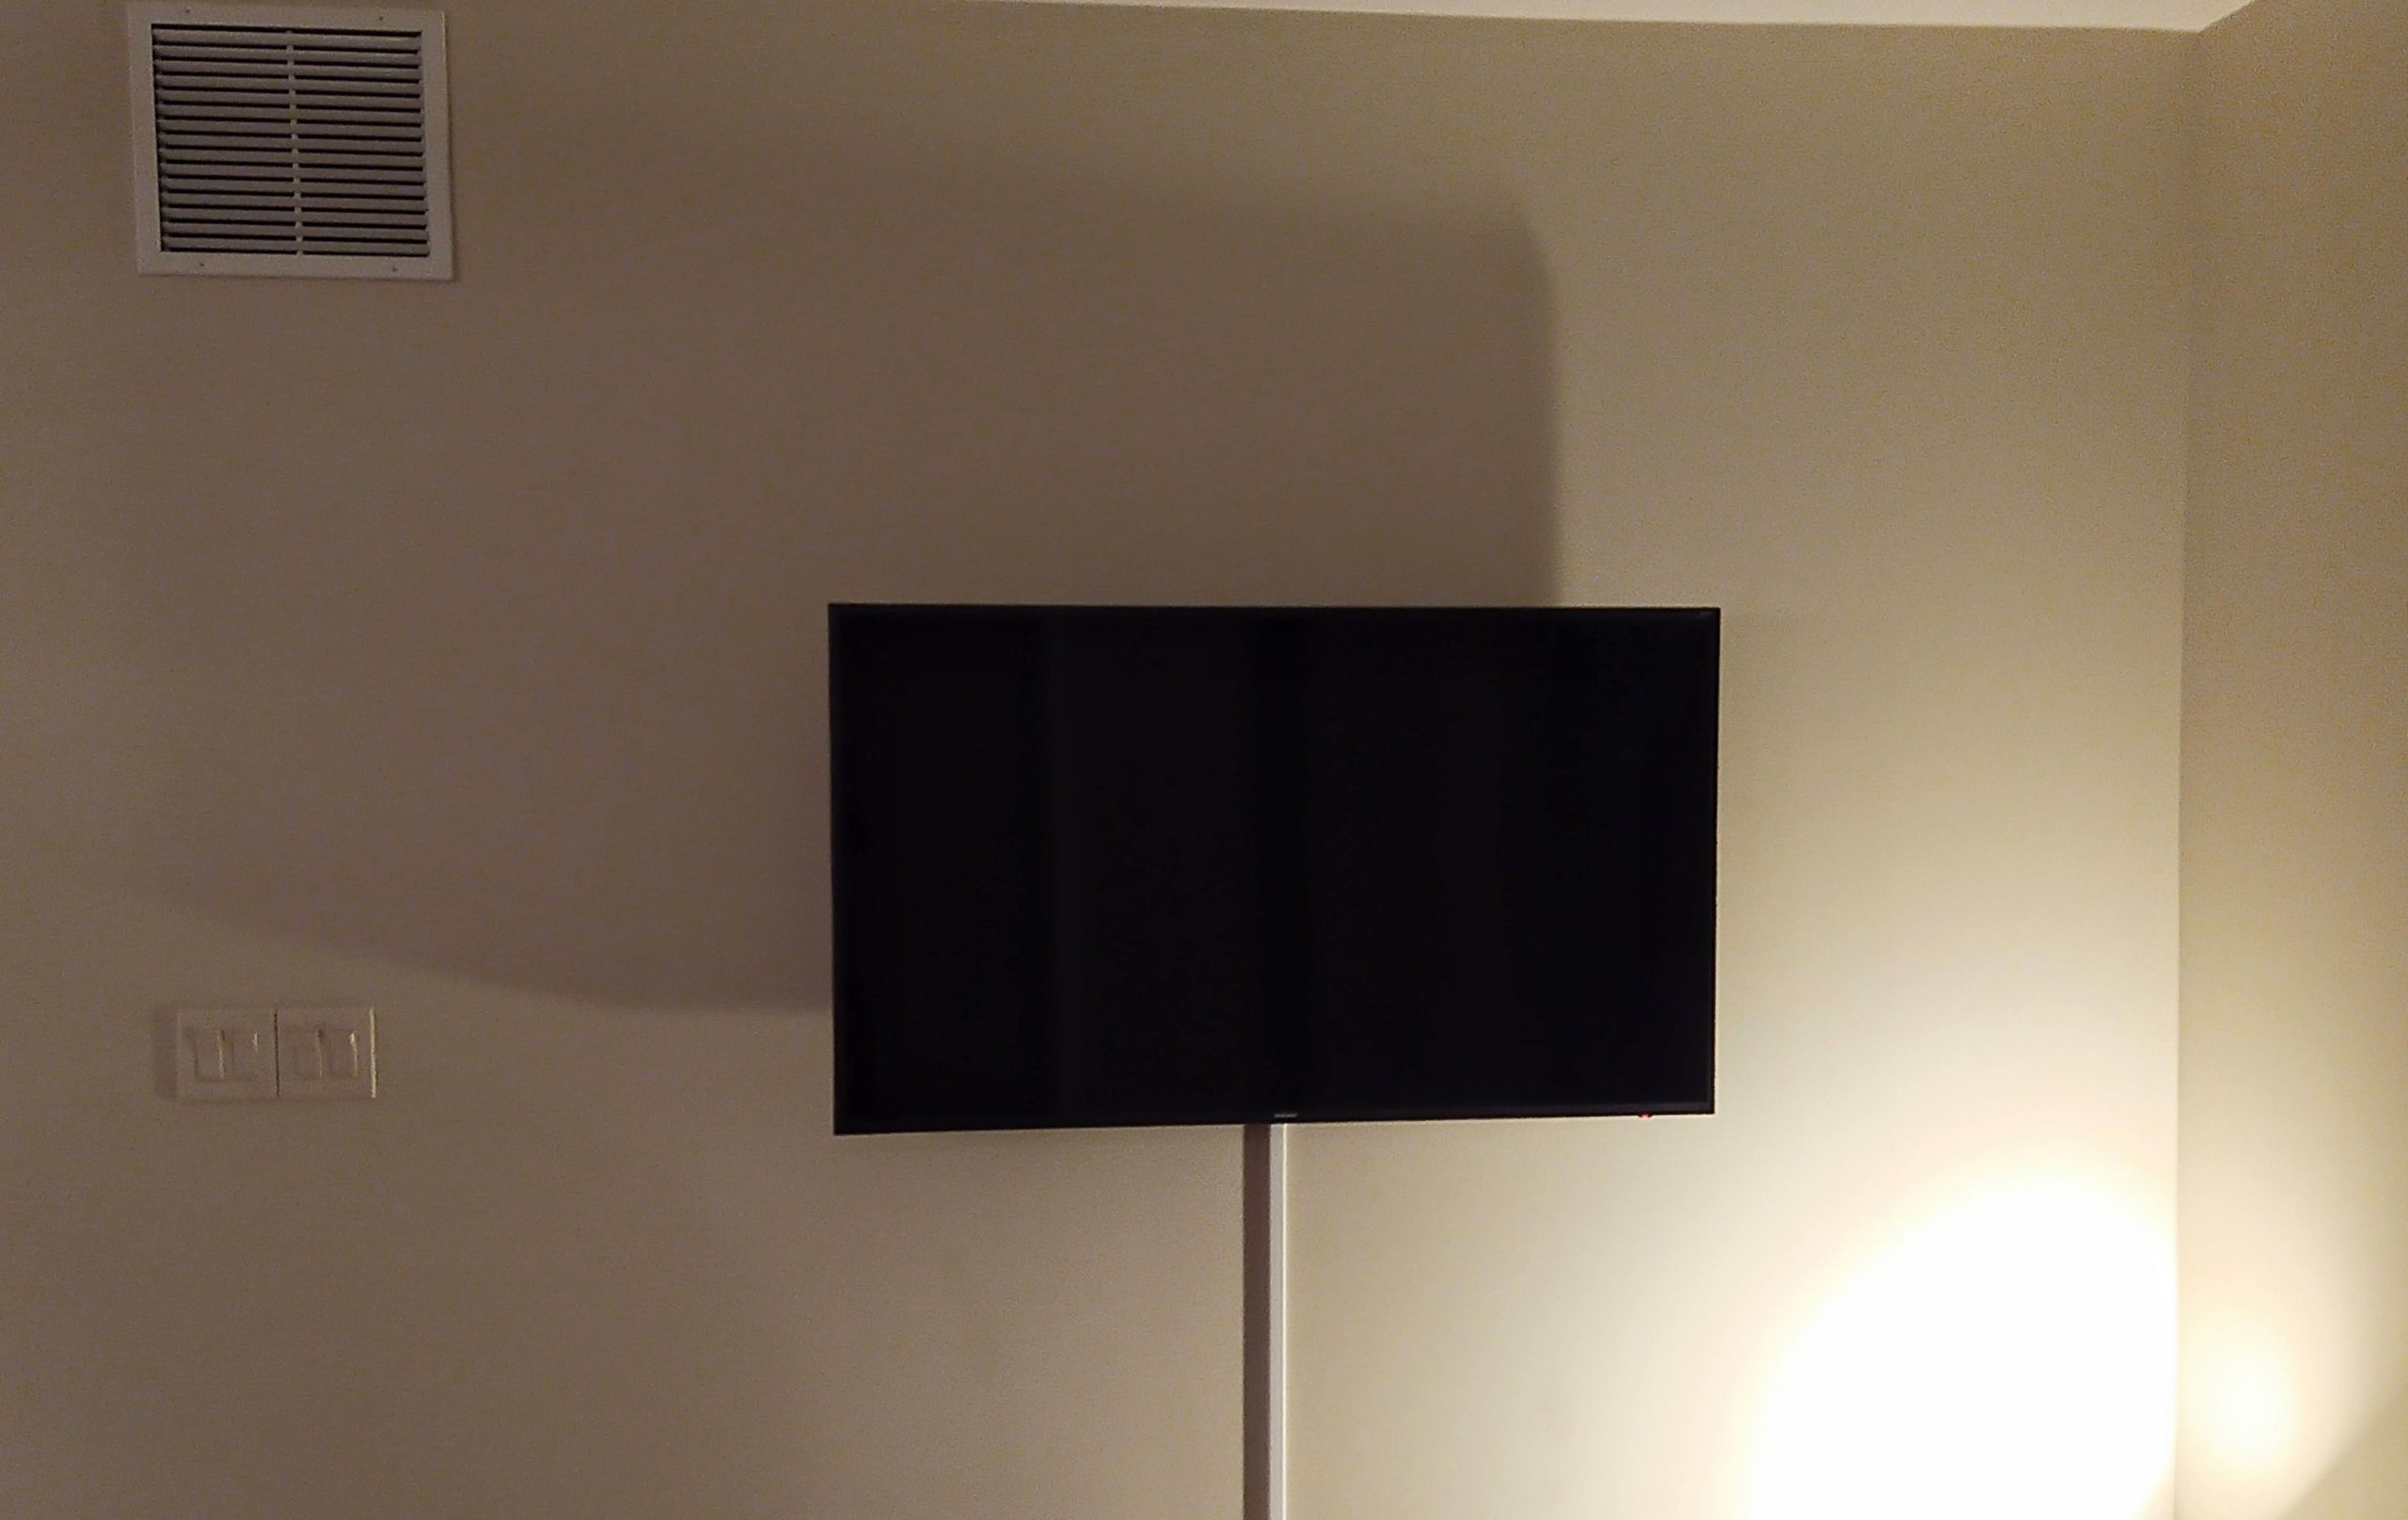 TV wall mounted installation with surface cord concealment